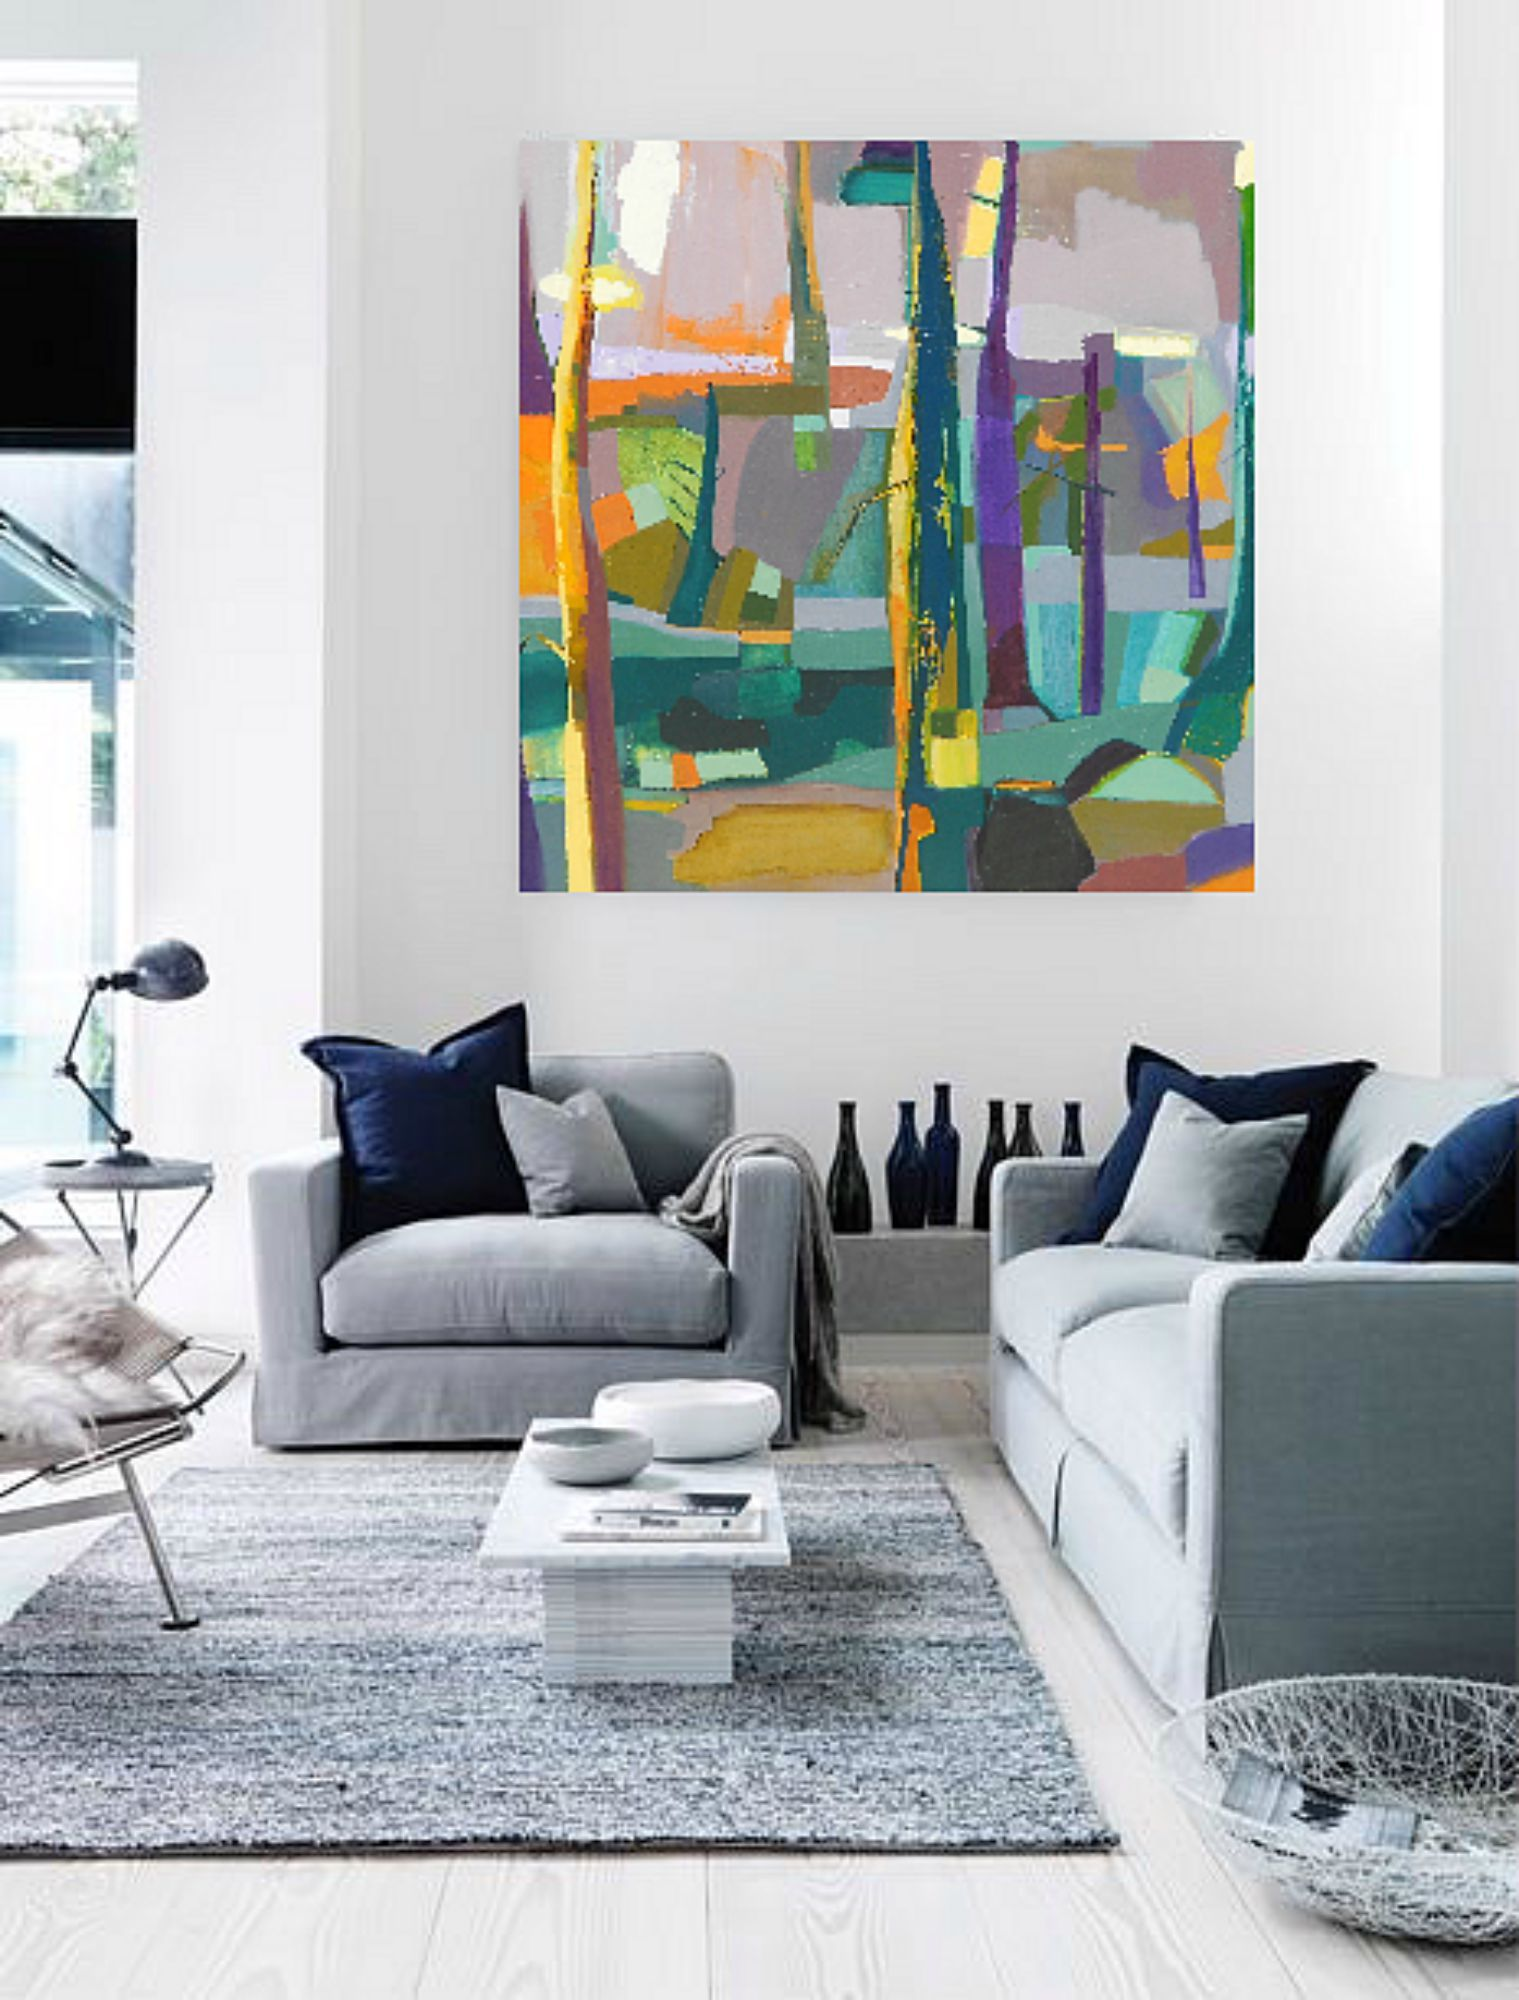 36 x 36 large abstract landscape oil painting by artist - Landscape paintings for living room ...